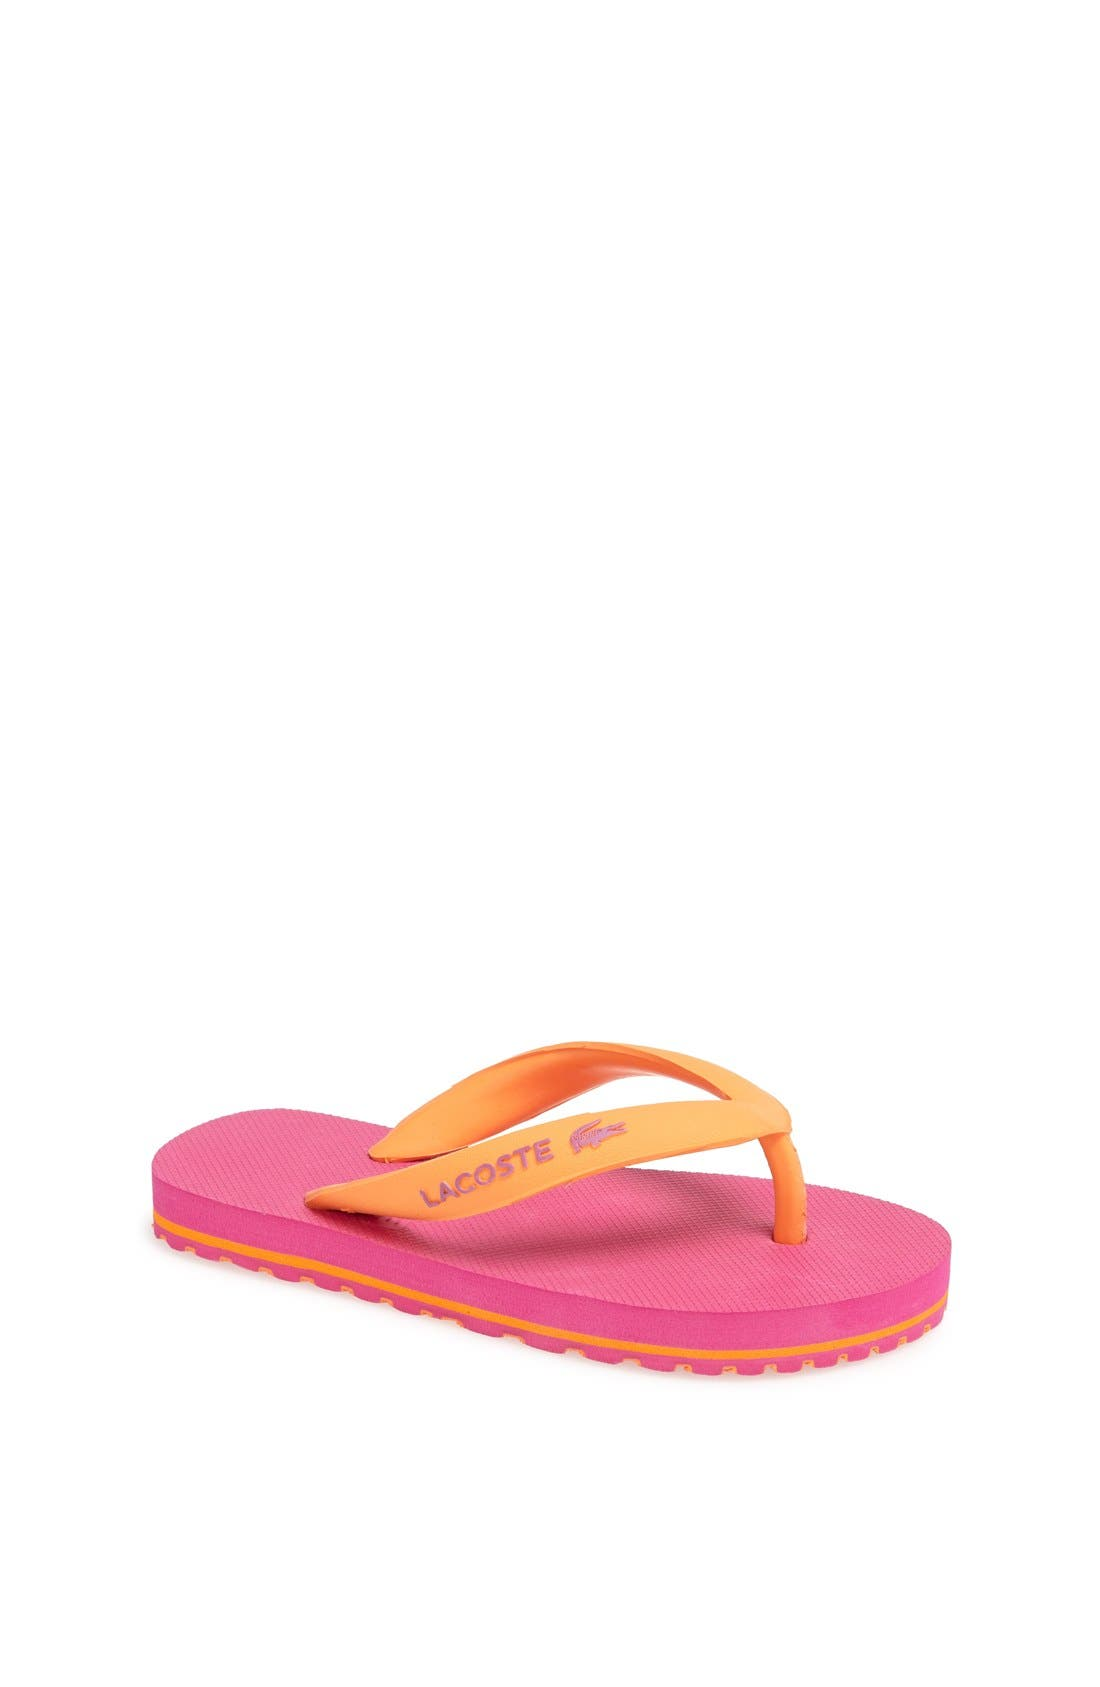 Alternate Image 1 Selected - Lacoste 'Nosara' Flip Flop (Toddler & Little Kid)